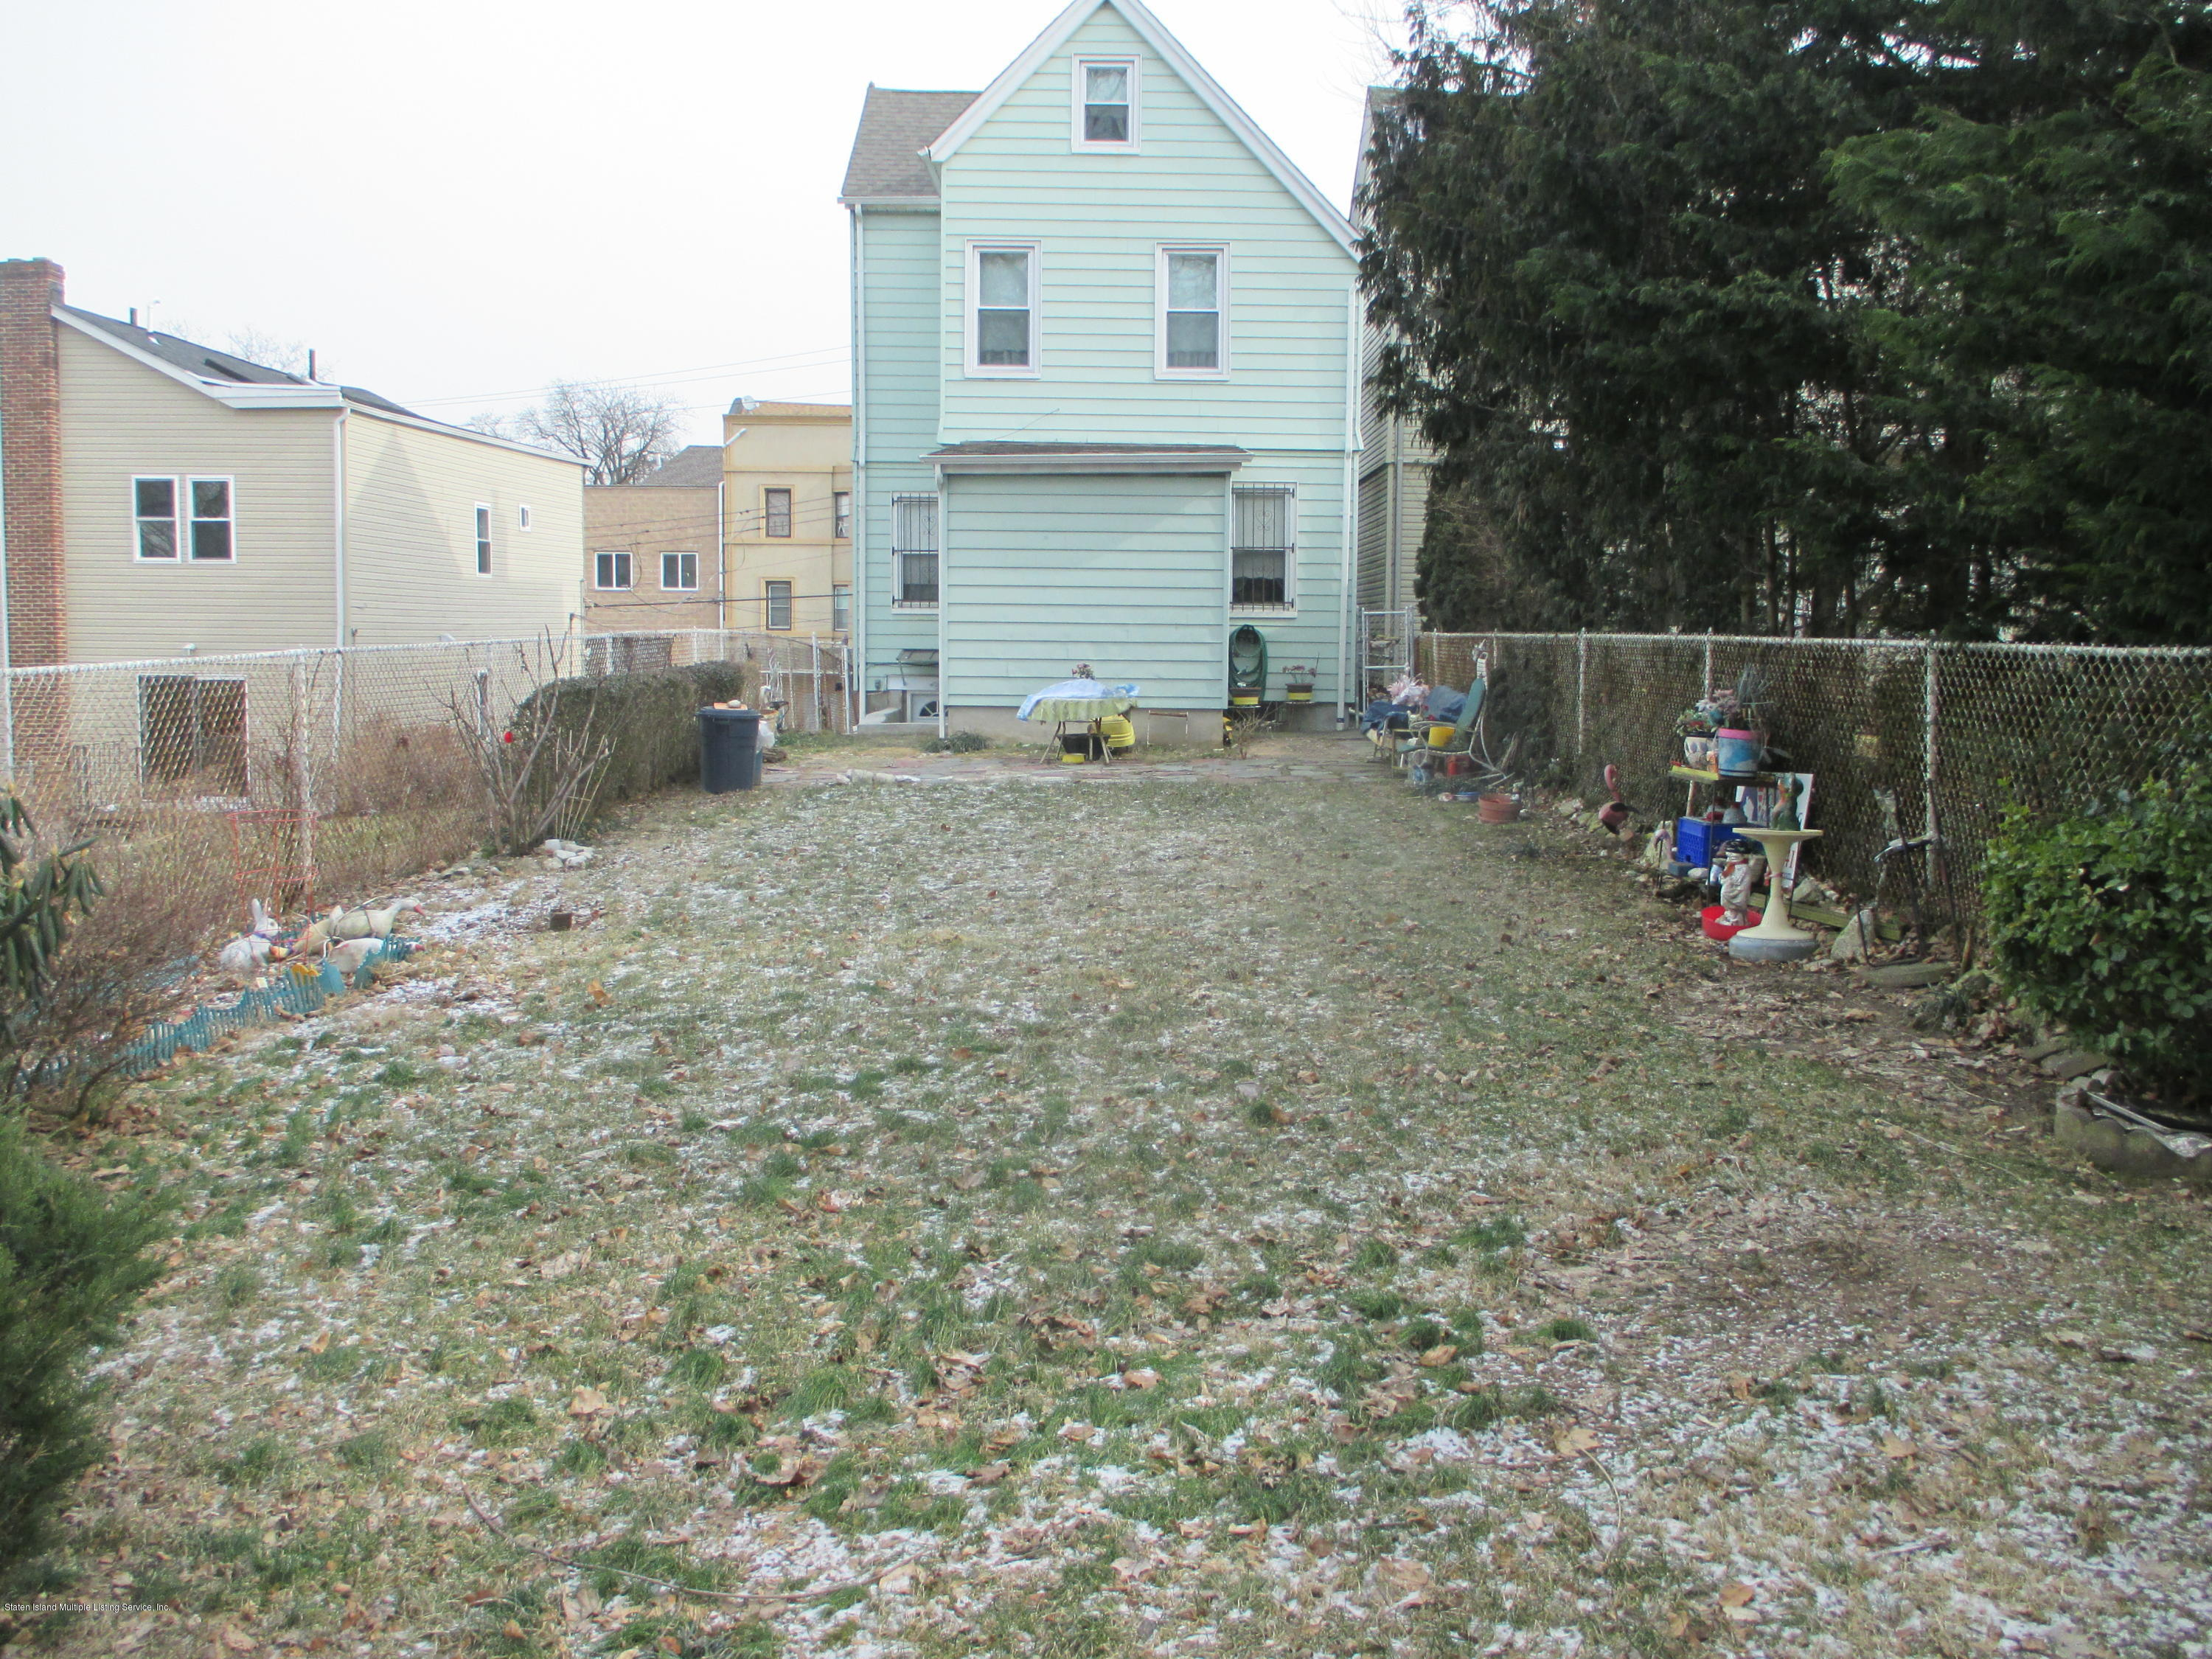 Two Family - Detached 24 Clinton Avenue  Staten Island, NY 10301, MLS-1125949-26